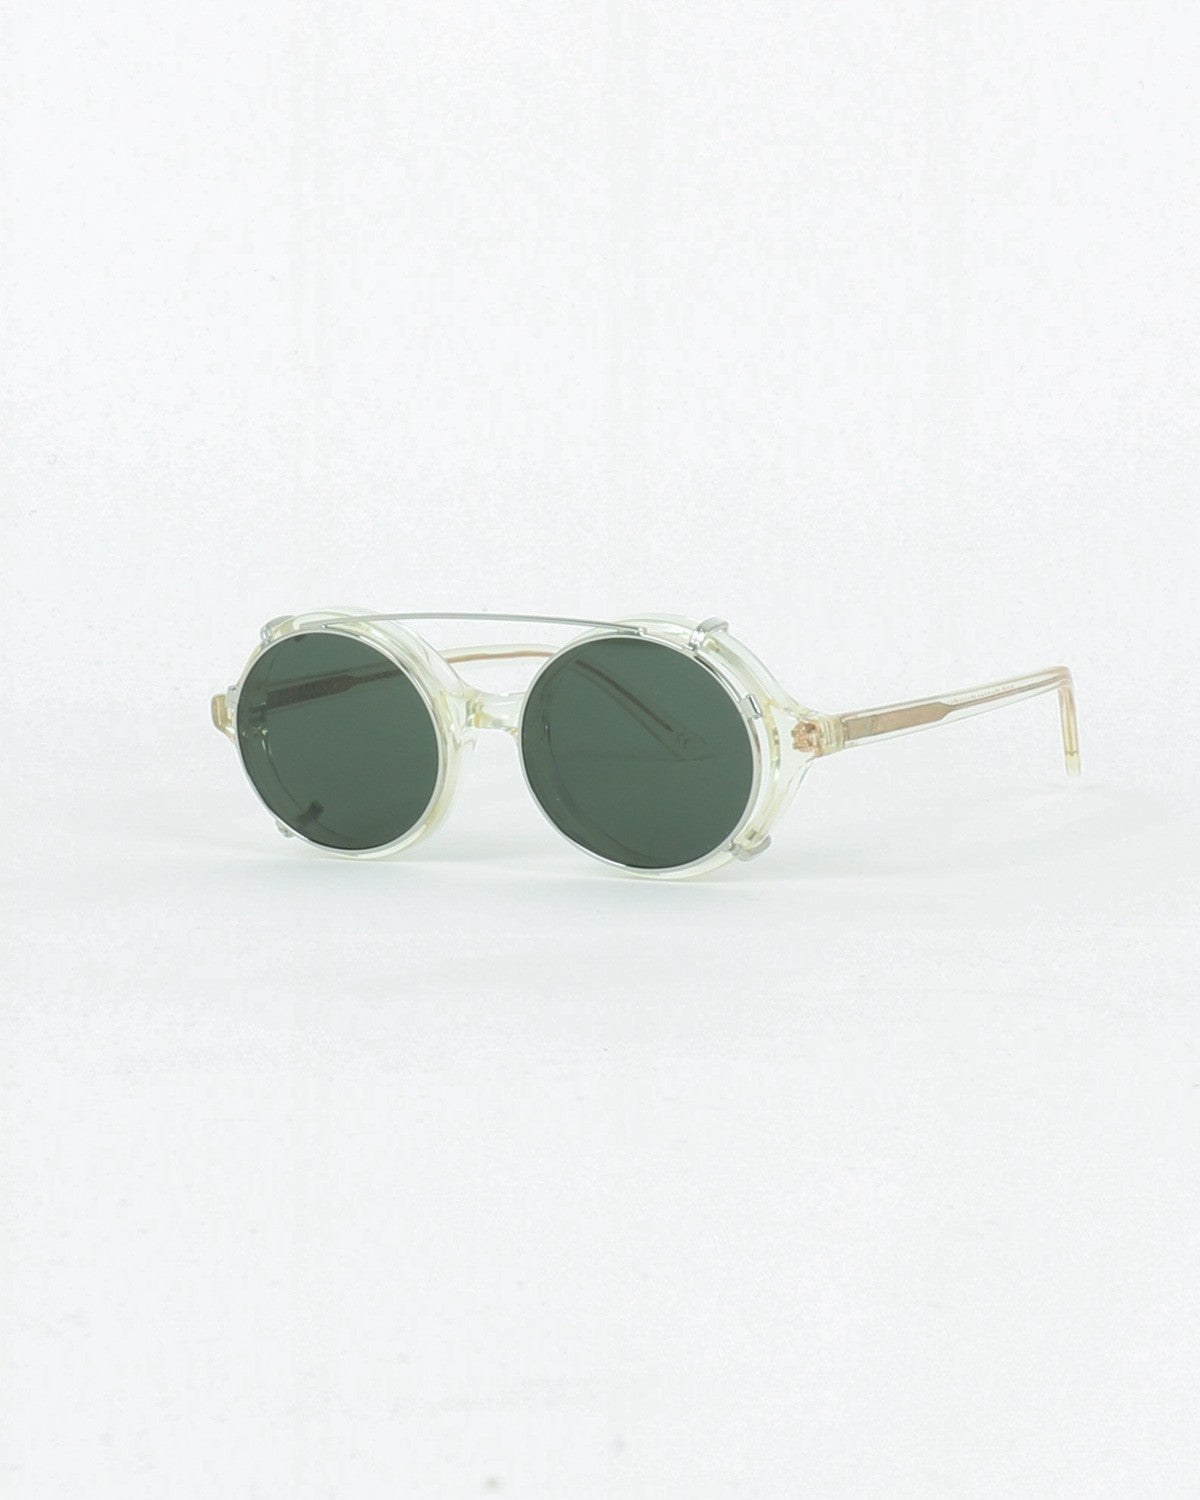 han kjobenhavn_doc clip on_sunglasses_champagne clear_view_1_4